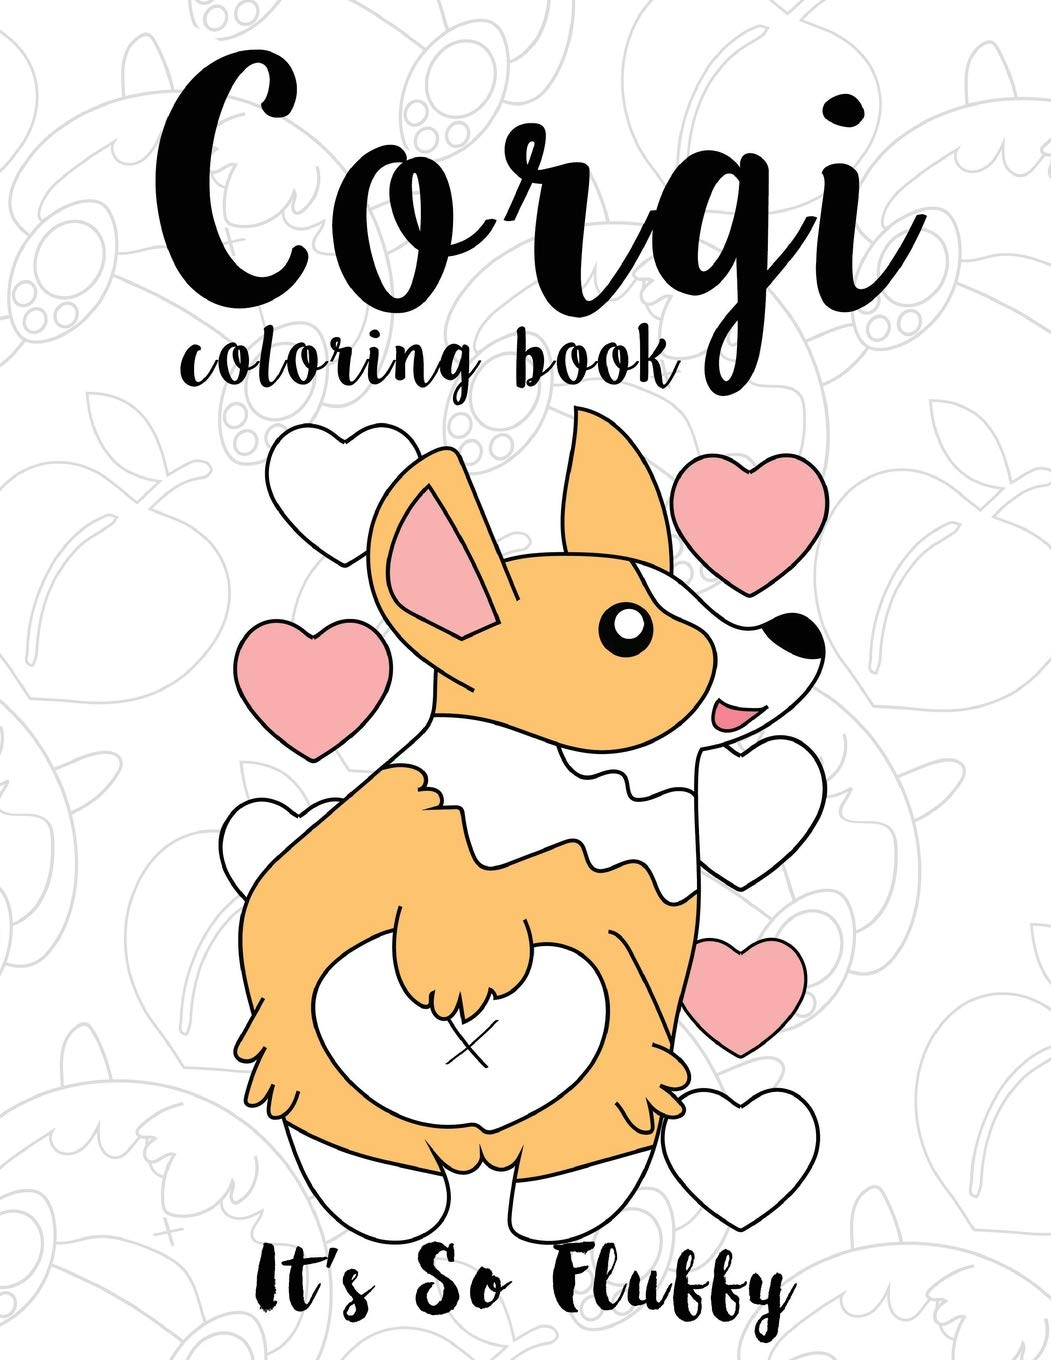 - Amazon.com: Corgi Coloring Book: It's So Fluffy: A Cute, Silly And